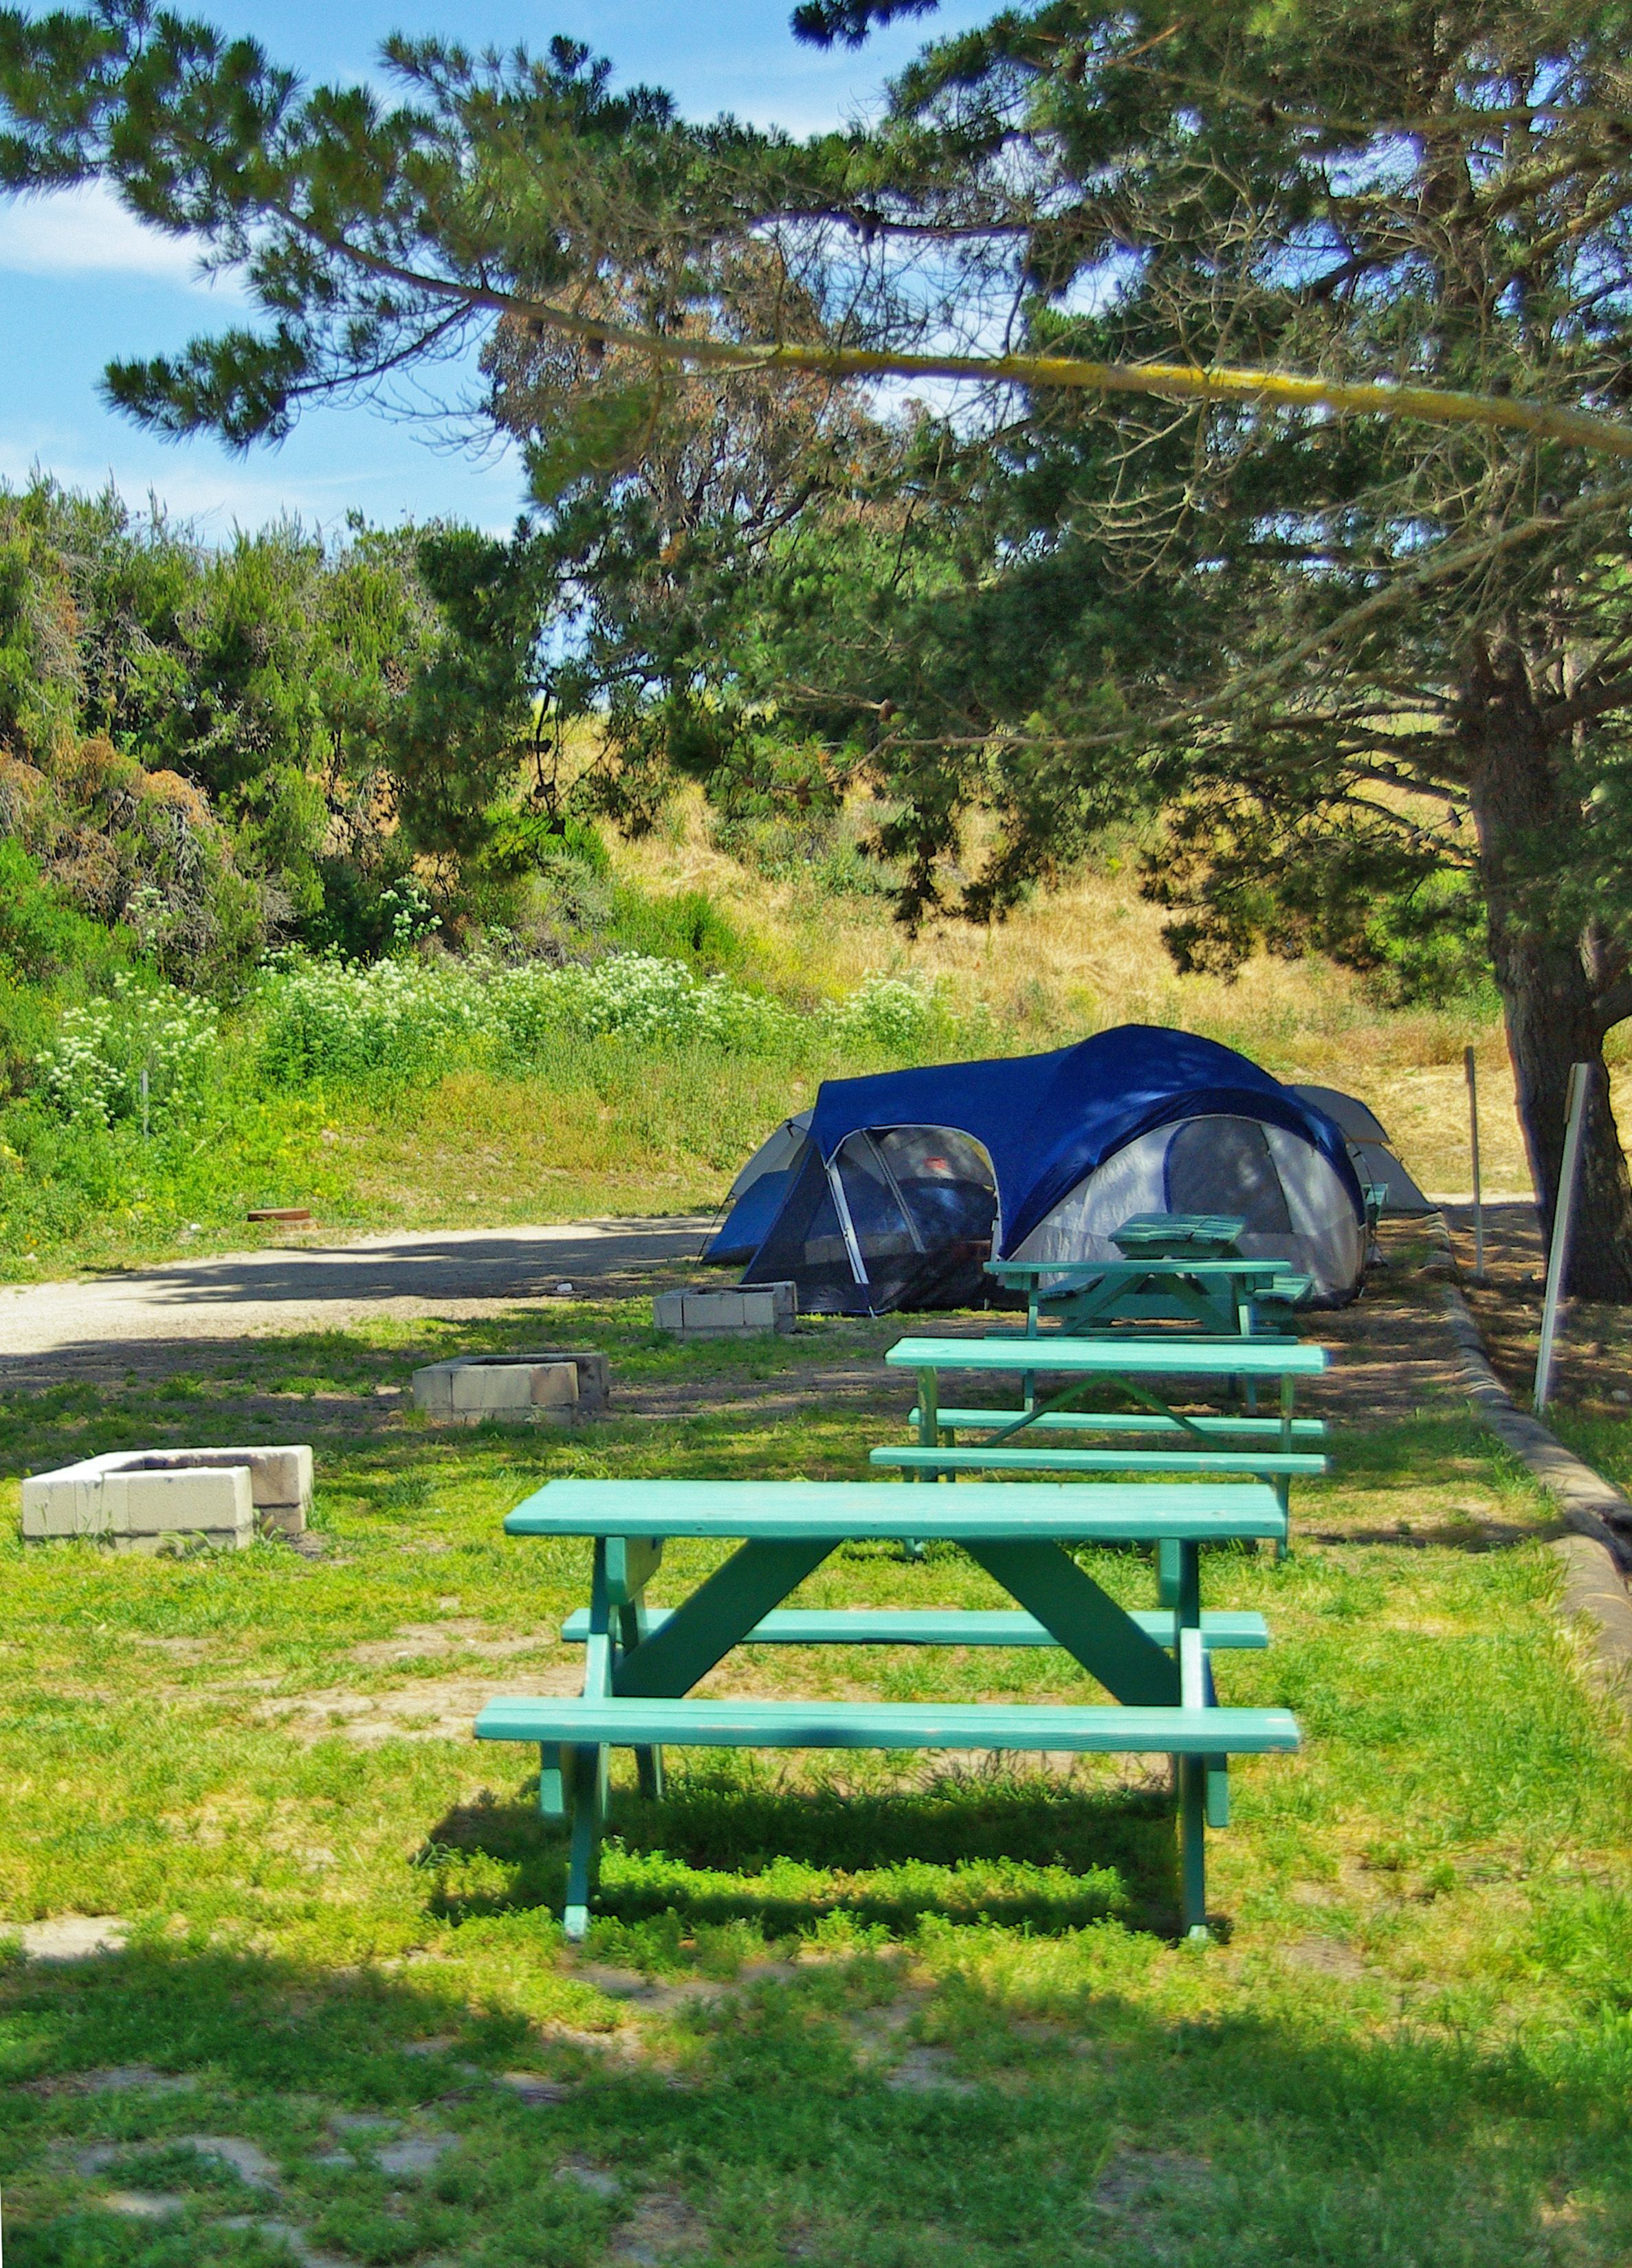 Tent Camping At The Avila Hot Springs Wow I Have Never Camped There And We Live So Close Good Idea